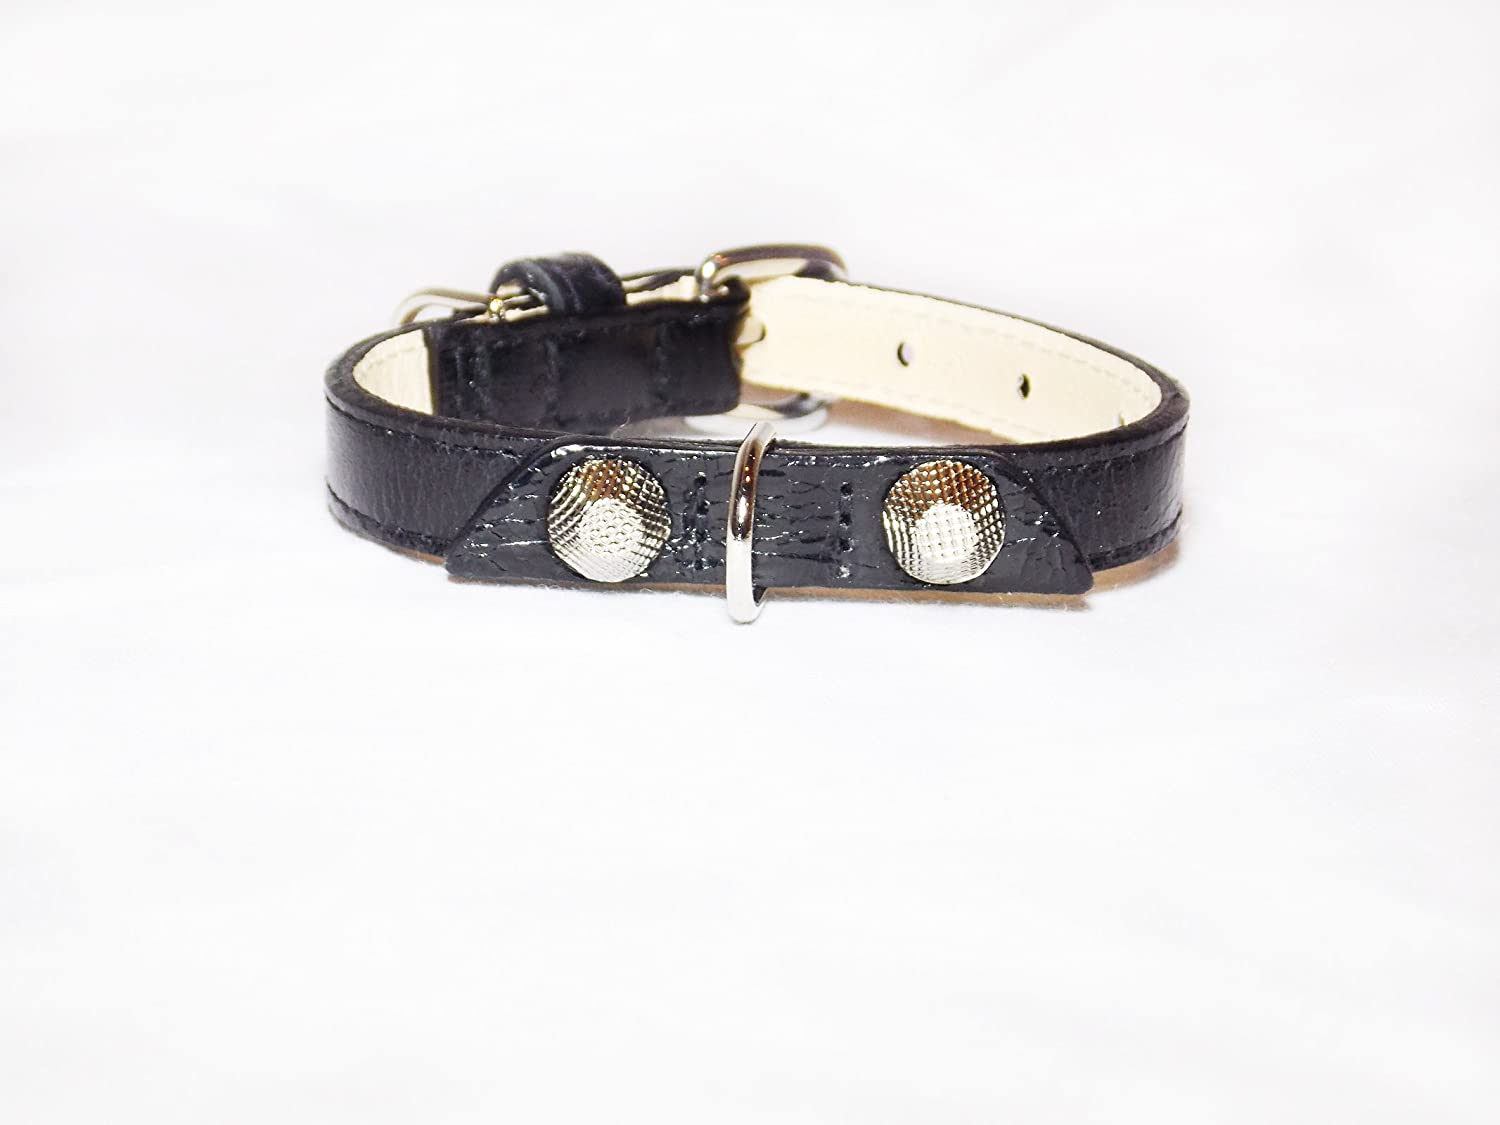 Balencioochee Straight Dog Collar, Rivets, Extra Small Size 8, Black with Silver Rivets